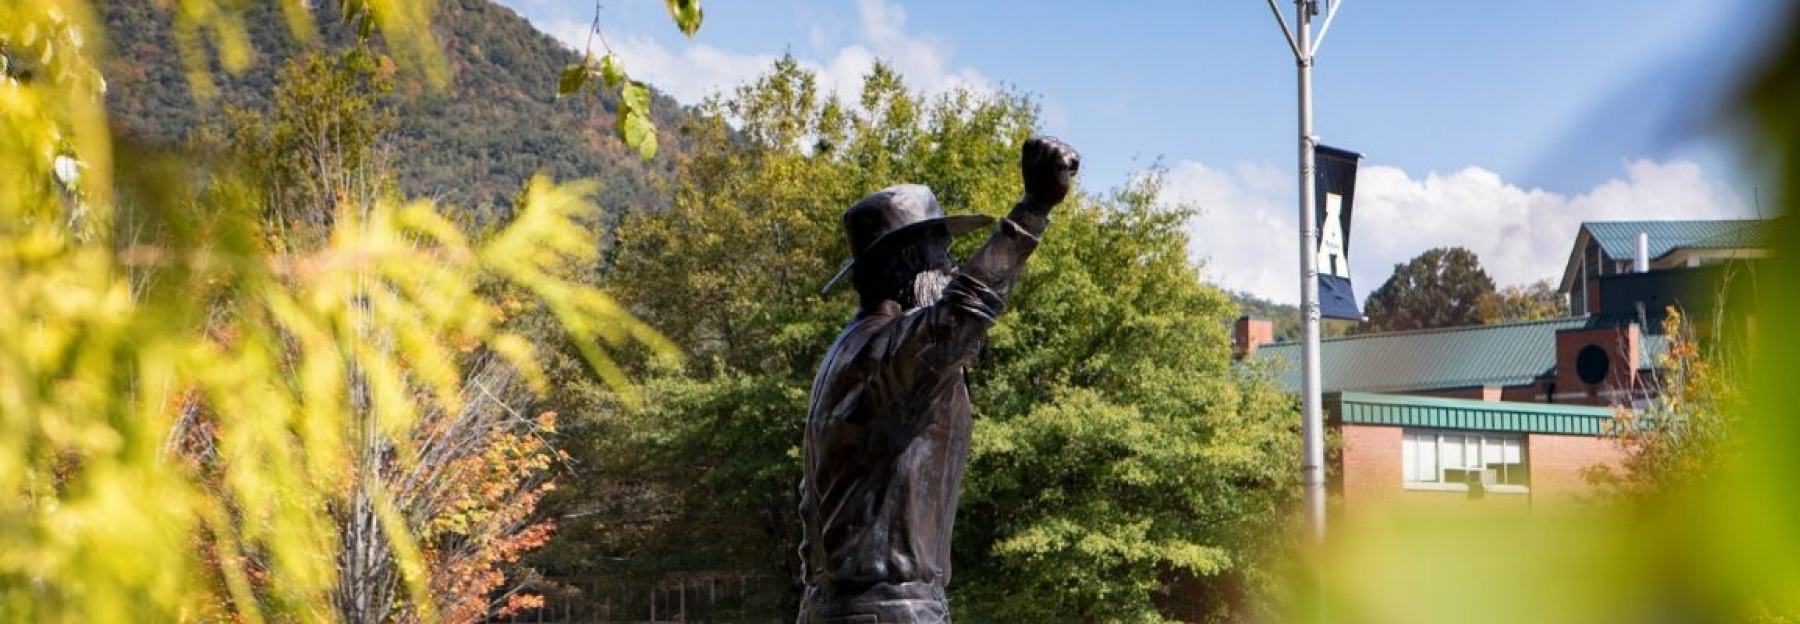 campus picture of the back of the Yosef statue